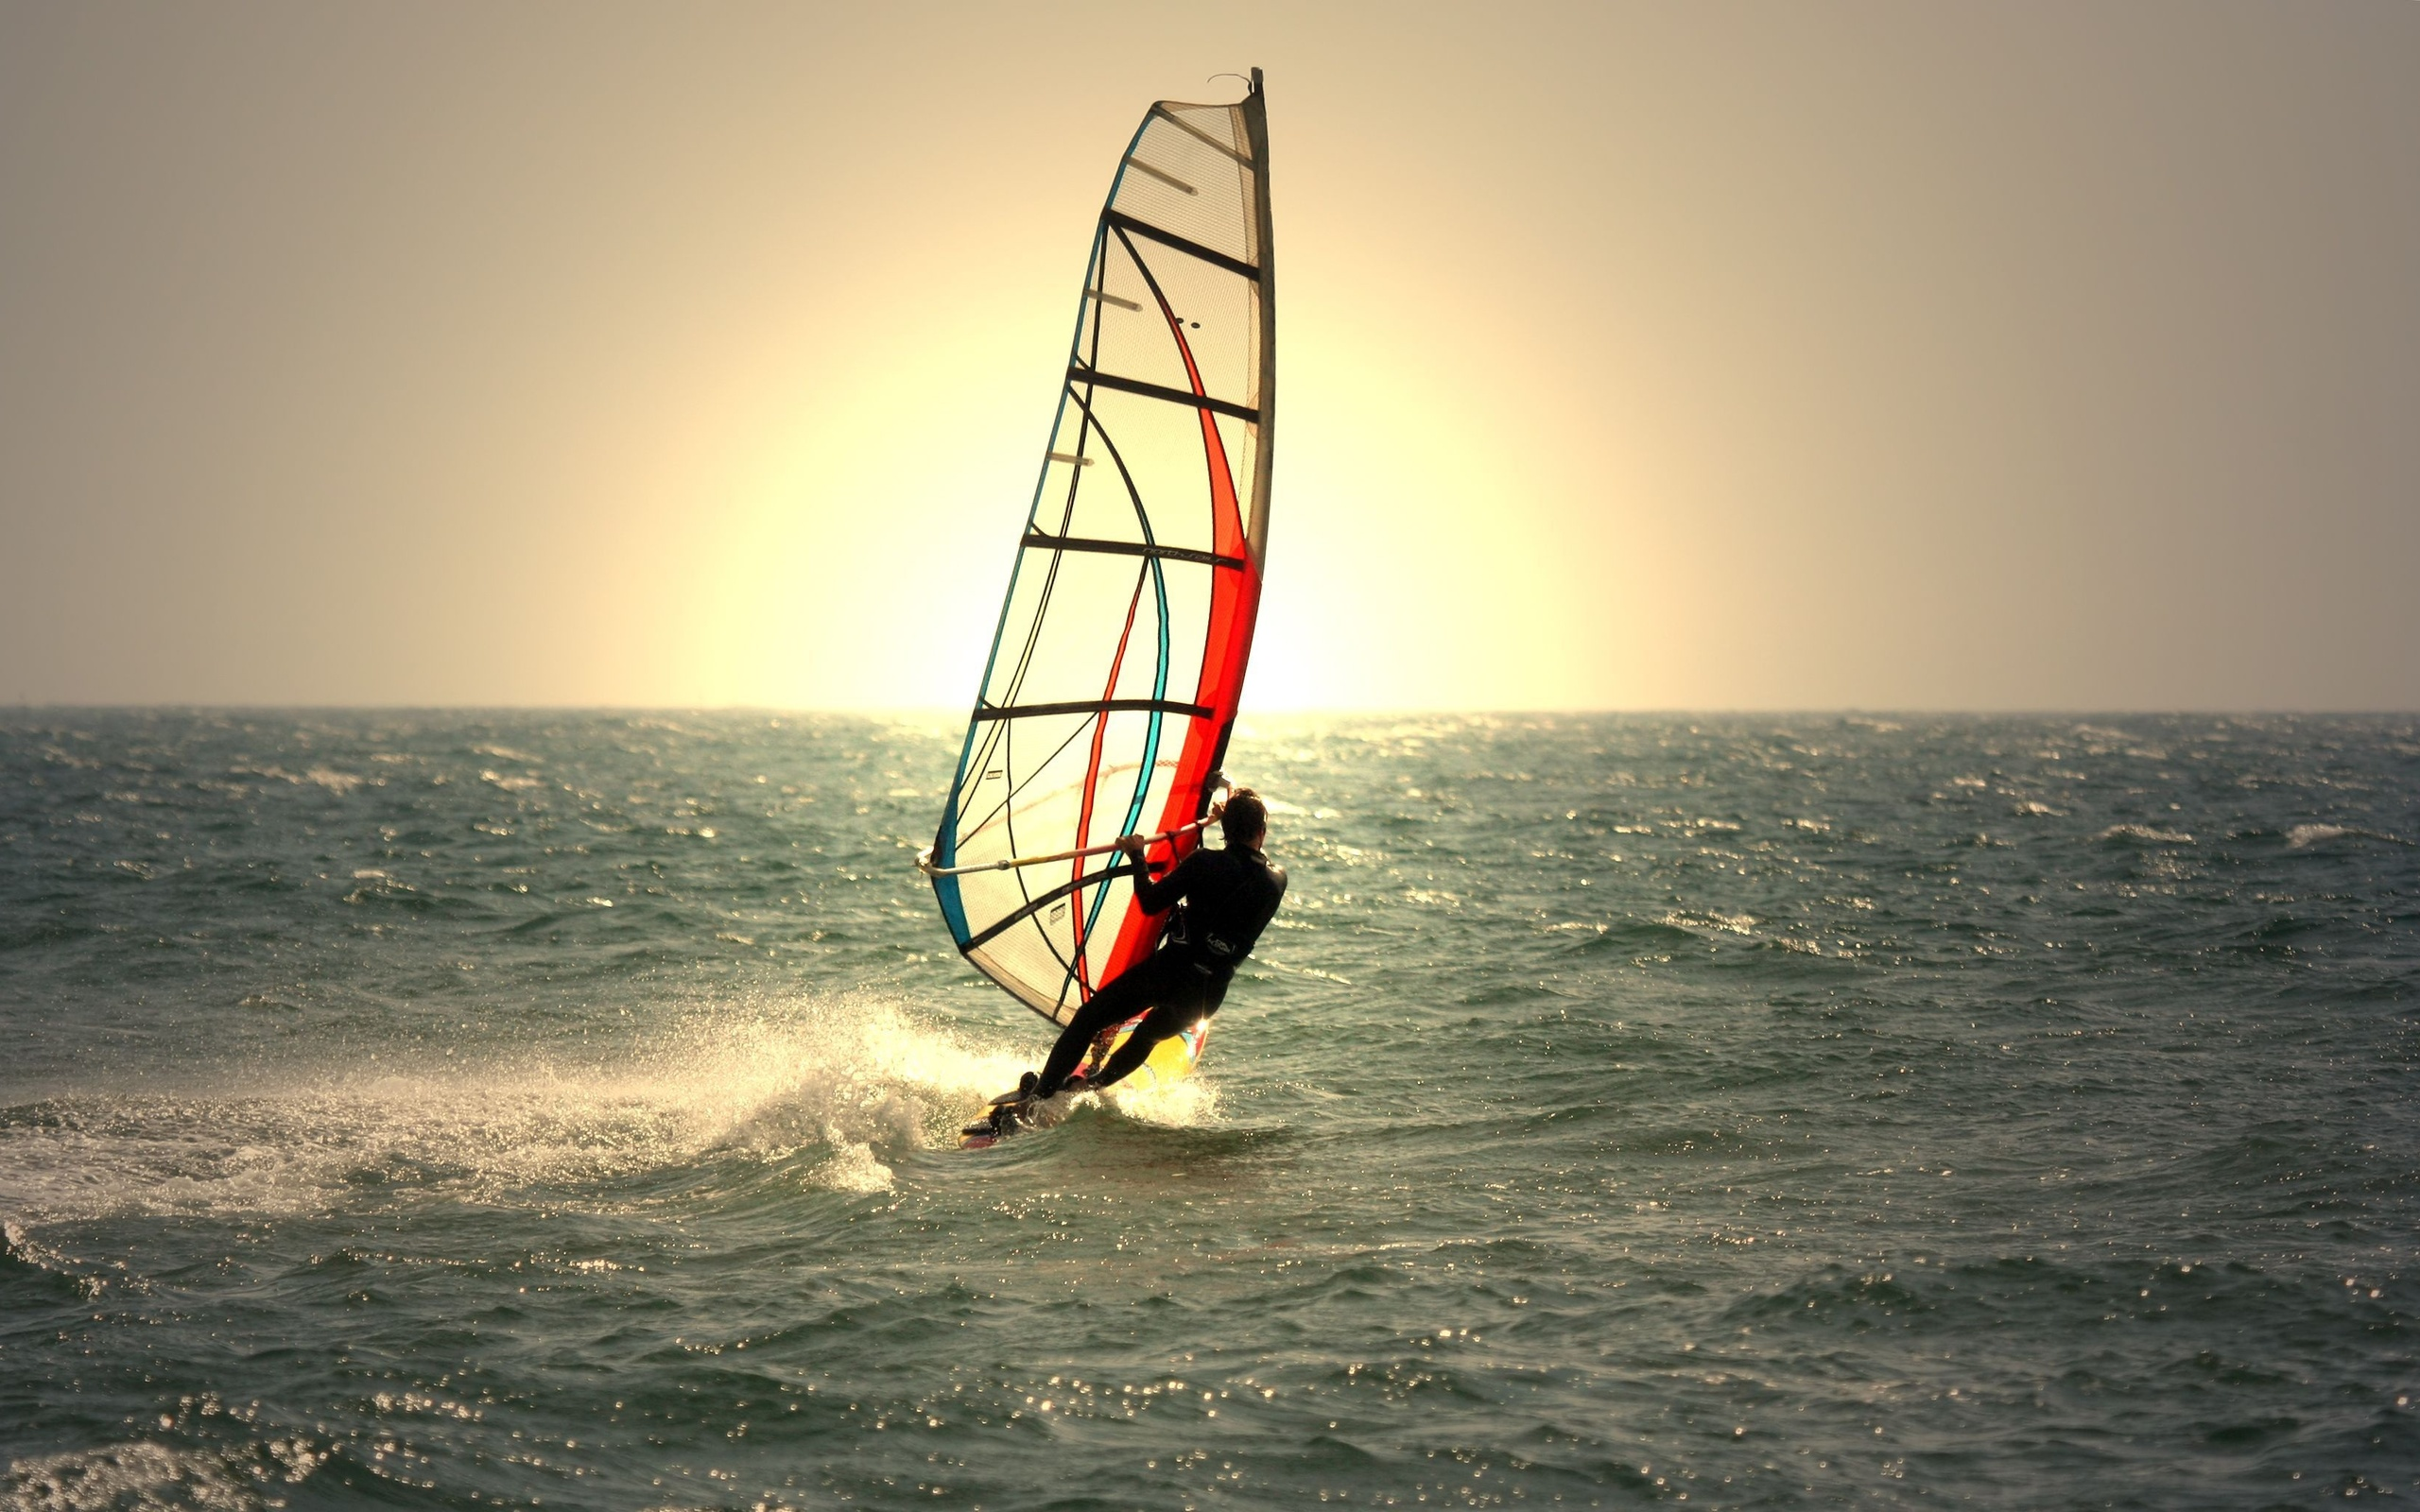 Surf Wallpaper Iphone X Windsurfing Full Hd Tapeta And Tło 2560x1600 Id 534053